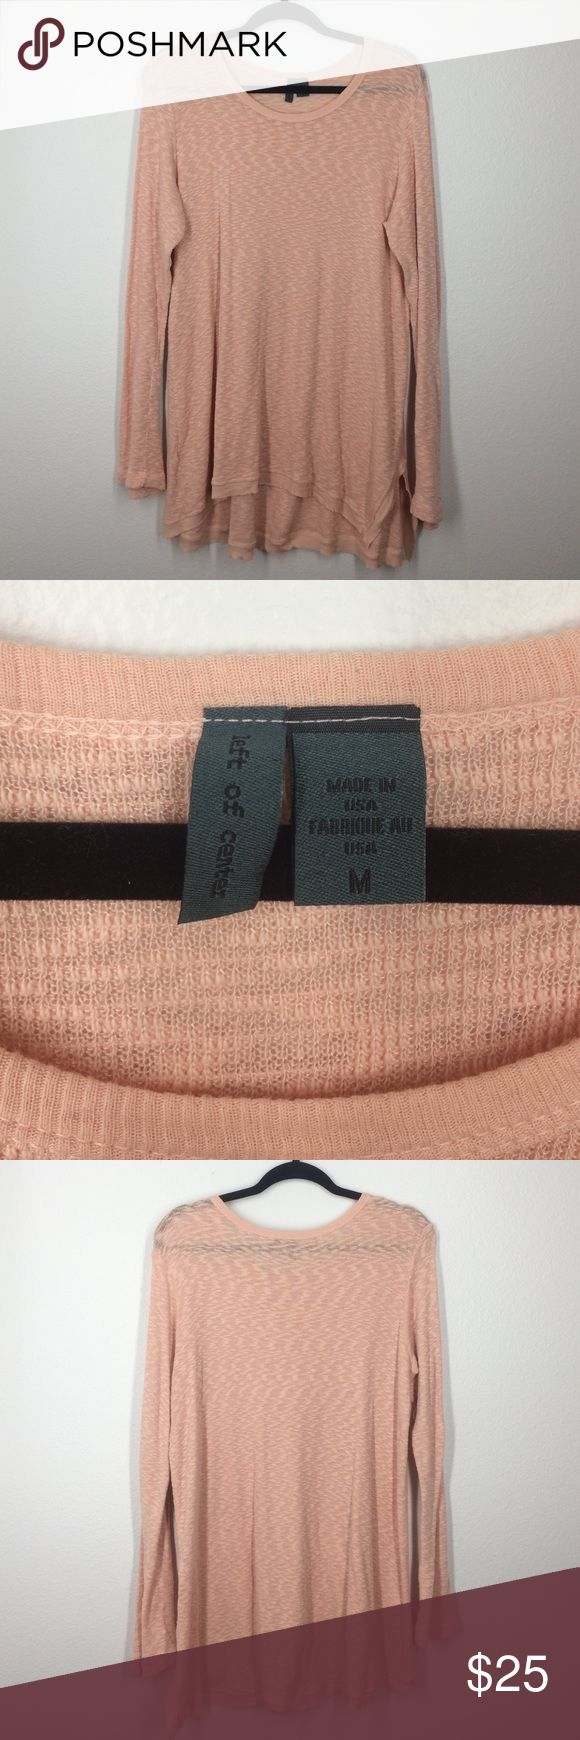 Anthropologie left of center peach top size M Beautiful and cozy peach long sleeve top. Like new! Runs big! Anthropologie Tops Tees - Long Sleeve